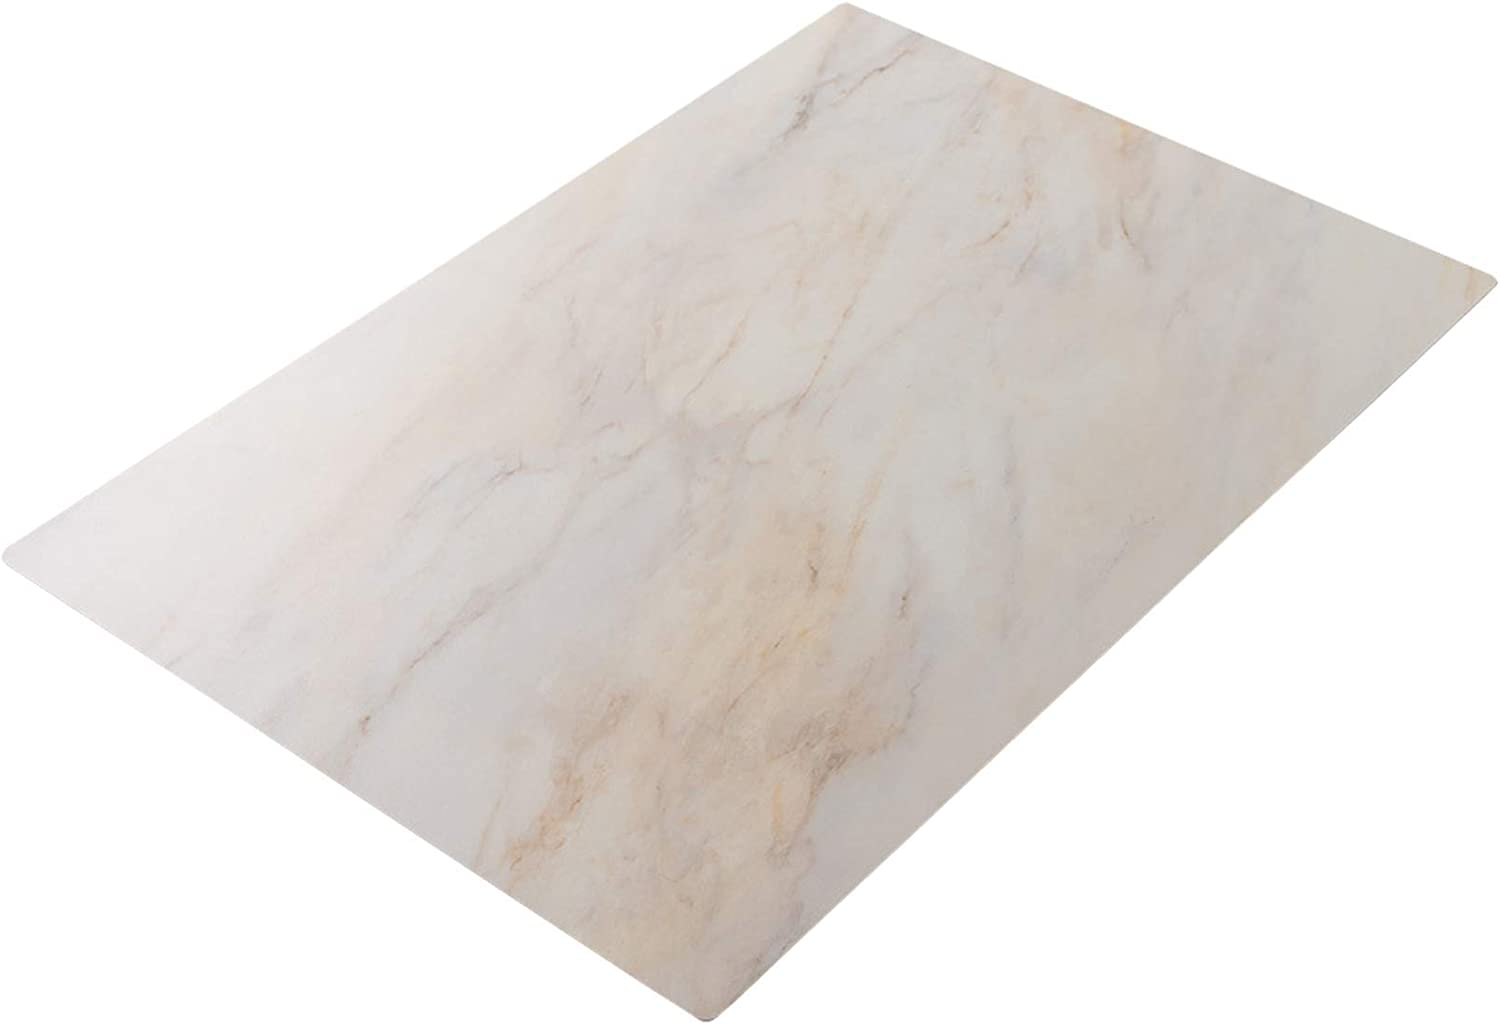 Bessie Bakes Light Beige Marble Replicated Photography Backdrop Board for Food & Product Photography 2ft Wide X 3ft High | 3 mm Thick Moisture Resistant Stain Resistant Lightweight